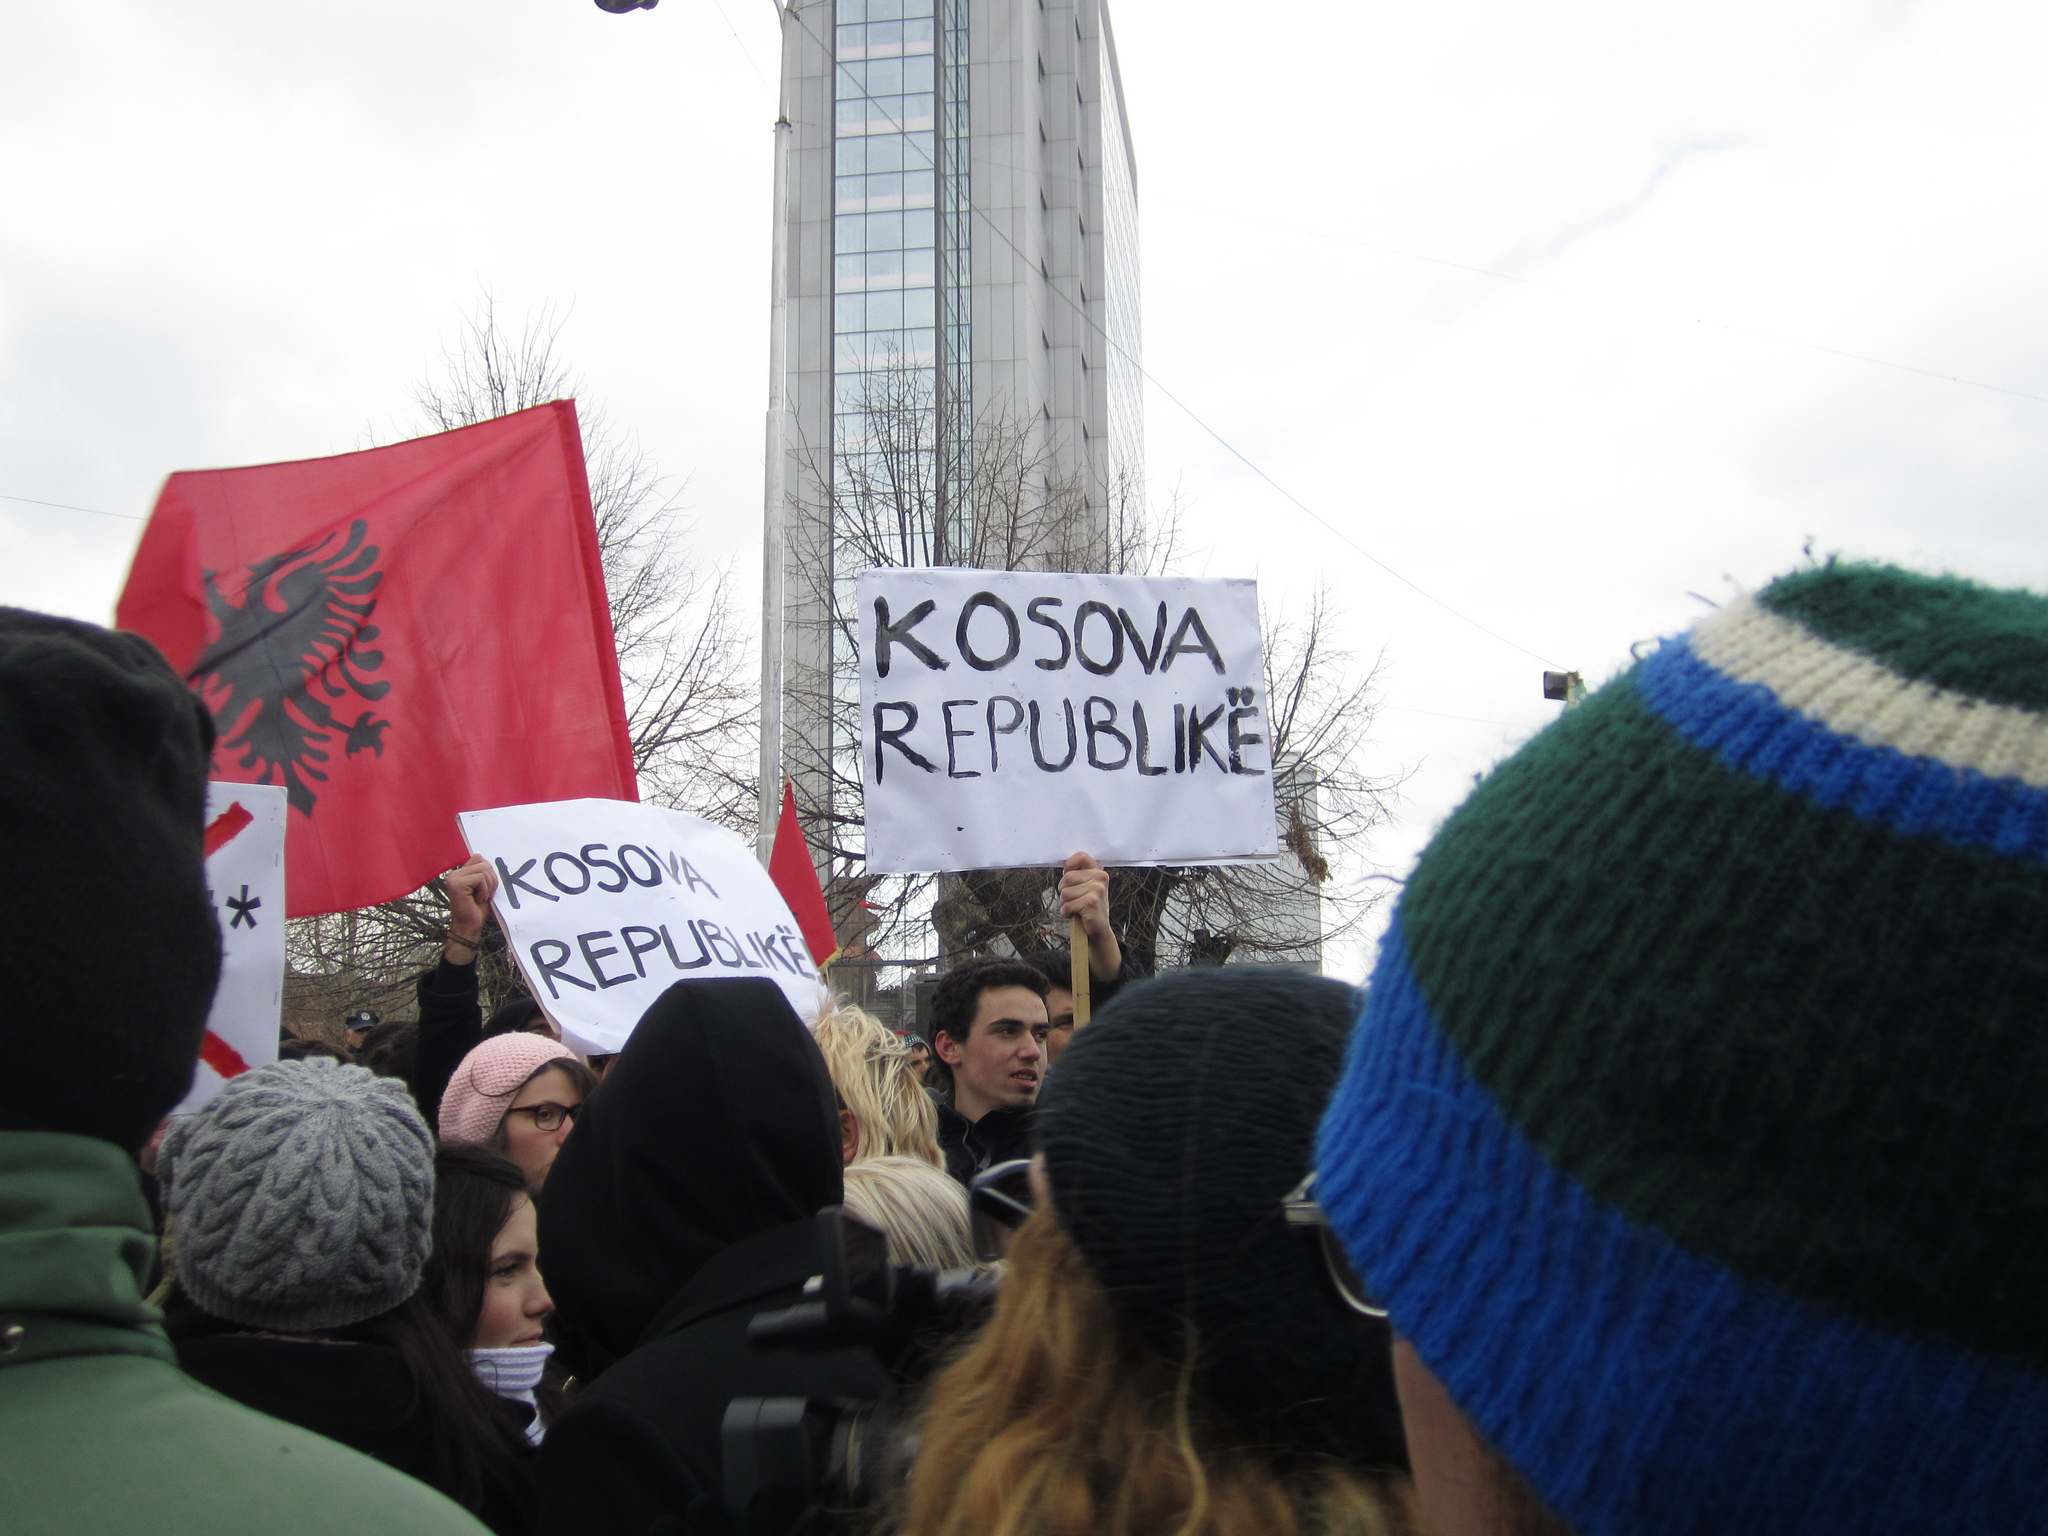 Kosova Republikë by Andrew Halterman via Flickr